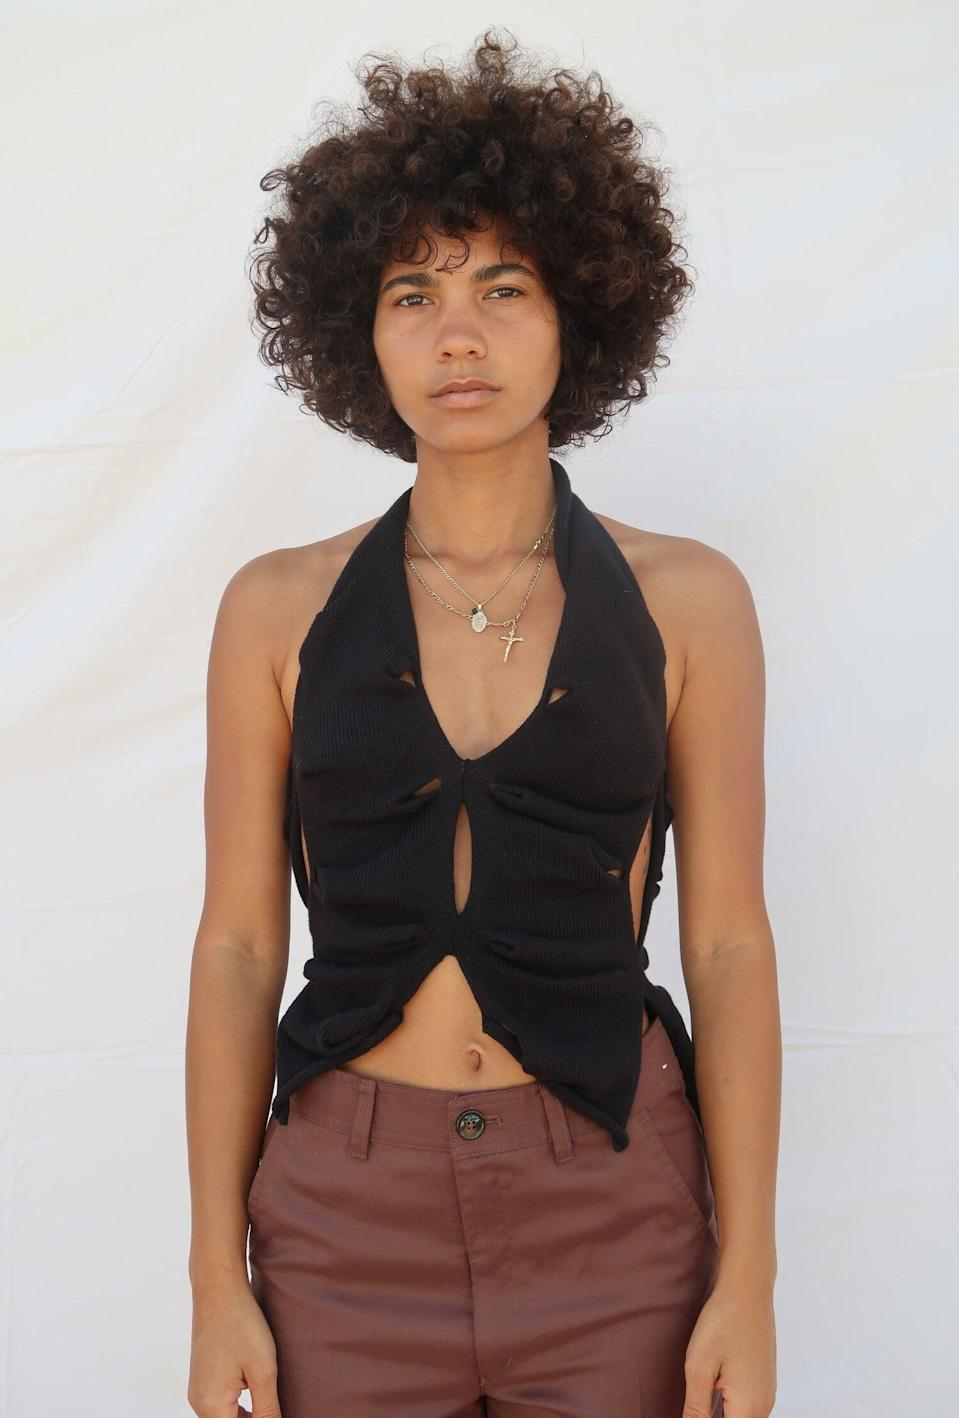 """<strong><h2>Krystal Paniagua</h2></strong>Knitwear designer Krystal Paniagua is a favorite of Kylie Jenner. The Puerto Rican designer makes sculptural knitwear, including ruched asymmetric tops and uneven skirts, all made by hand in her London studio. <br><br><em>Shop <a href=""""https://krystalpaniagua.com/"""" rel=""""nofollow noopener"""" target=""""_blank"""" data-ylk=""""slk:Krystal Paniagua"""" class=""""link rapid-noclick-resp"""">Krystal Paniagua</a></em>"""